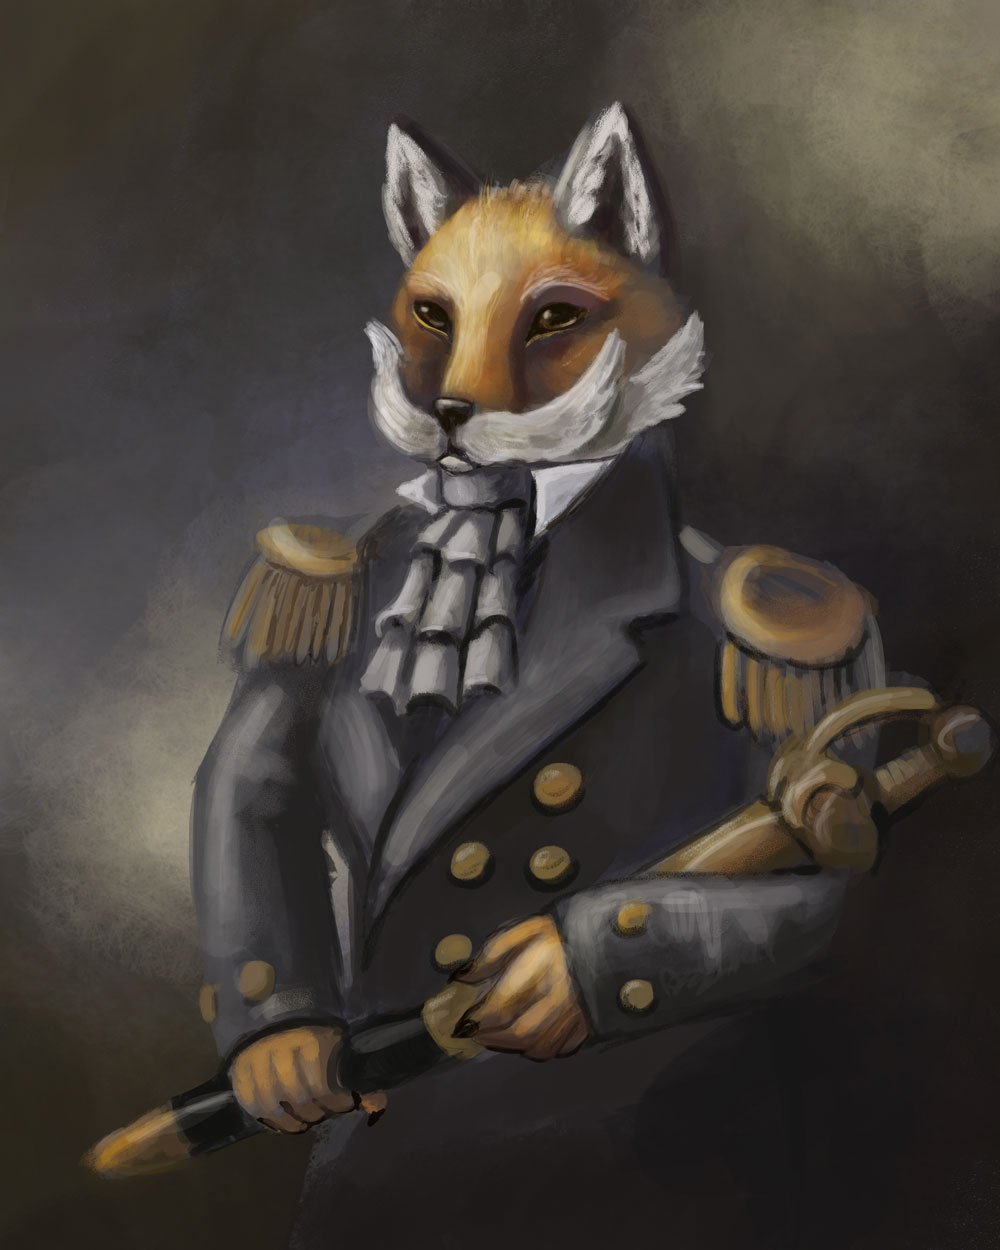 An illustration mimicking classic oil portraits depicting a dapper looking fox with a lare moustache.